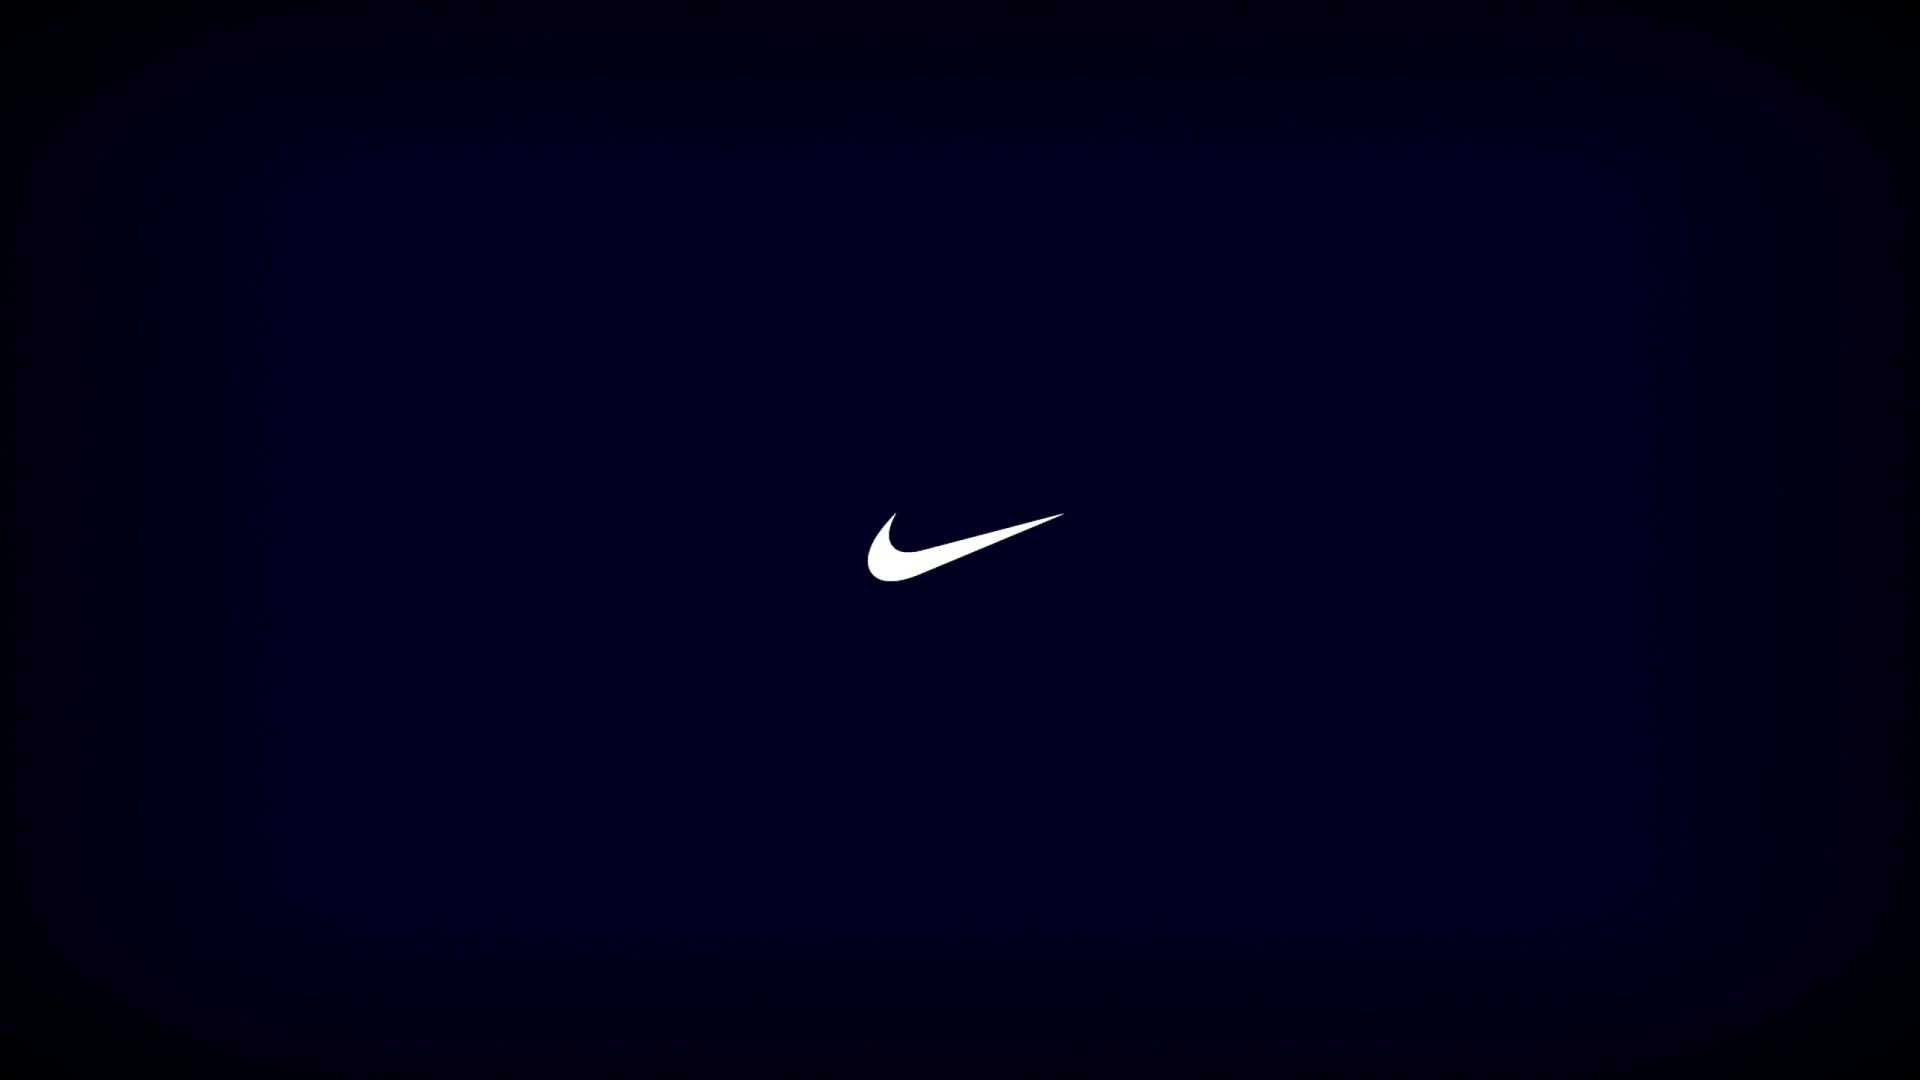 nike galaxy wallpaper HD 1920x1080